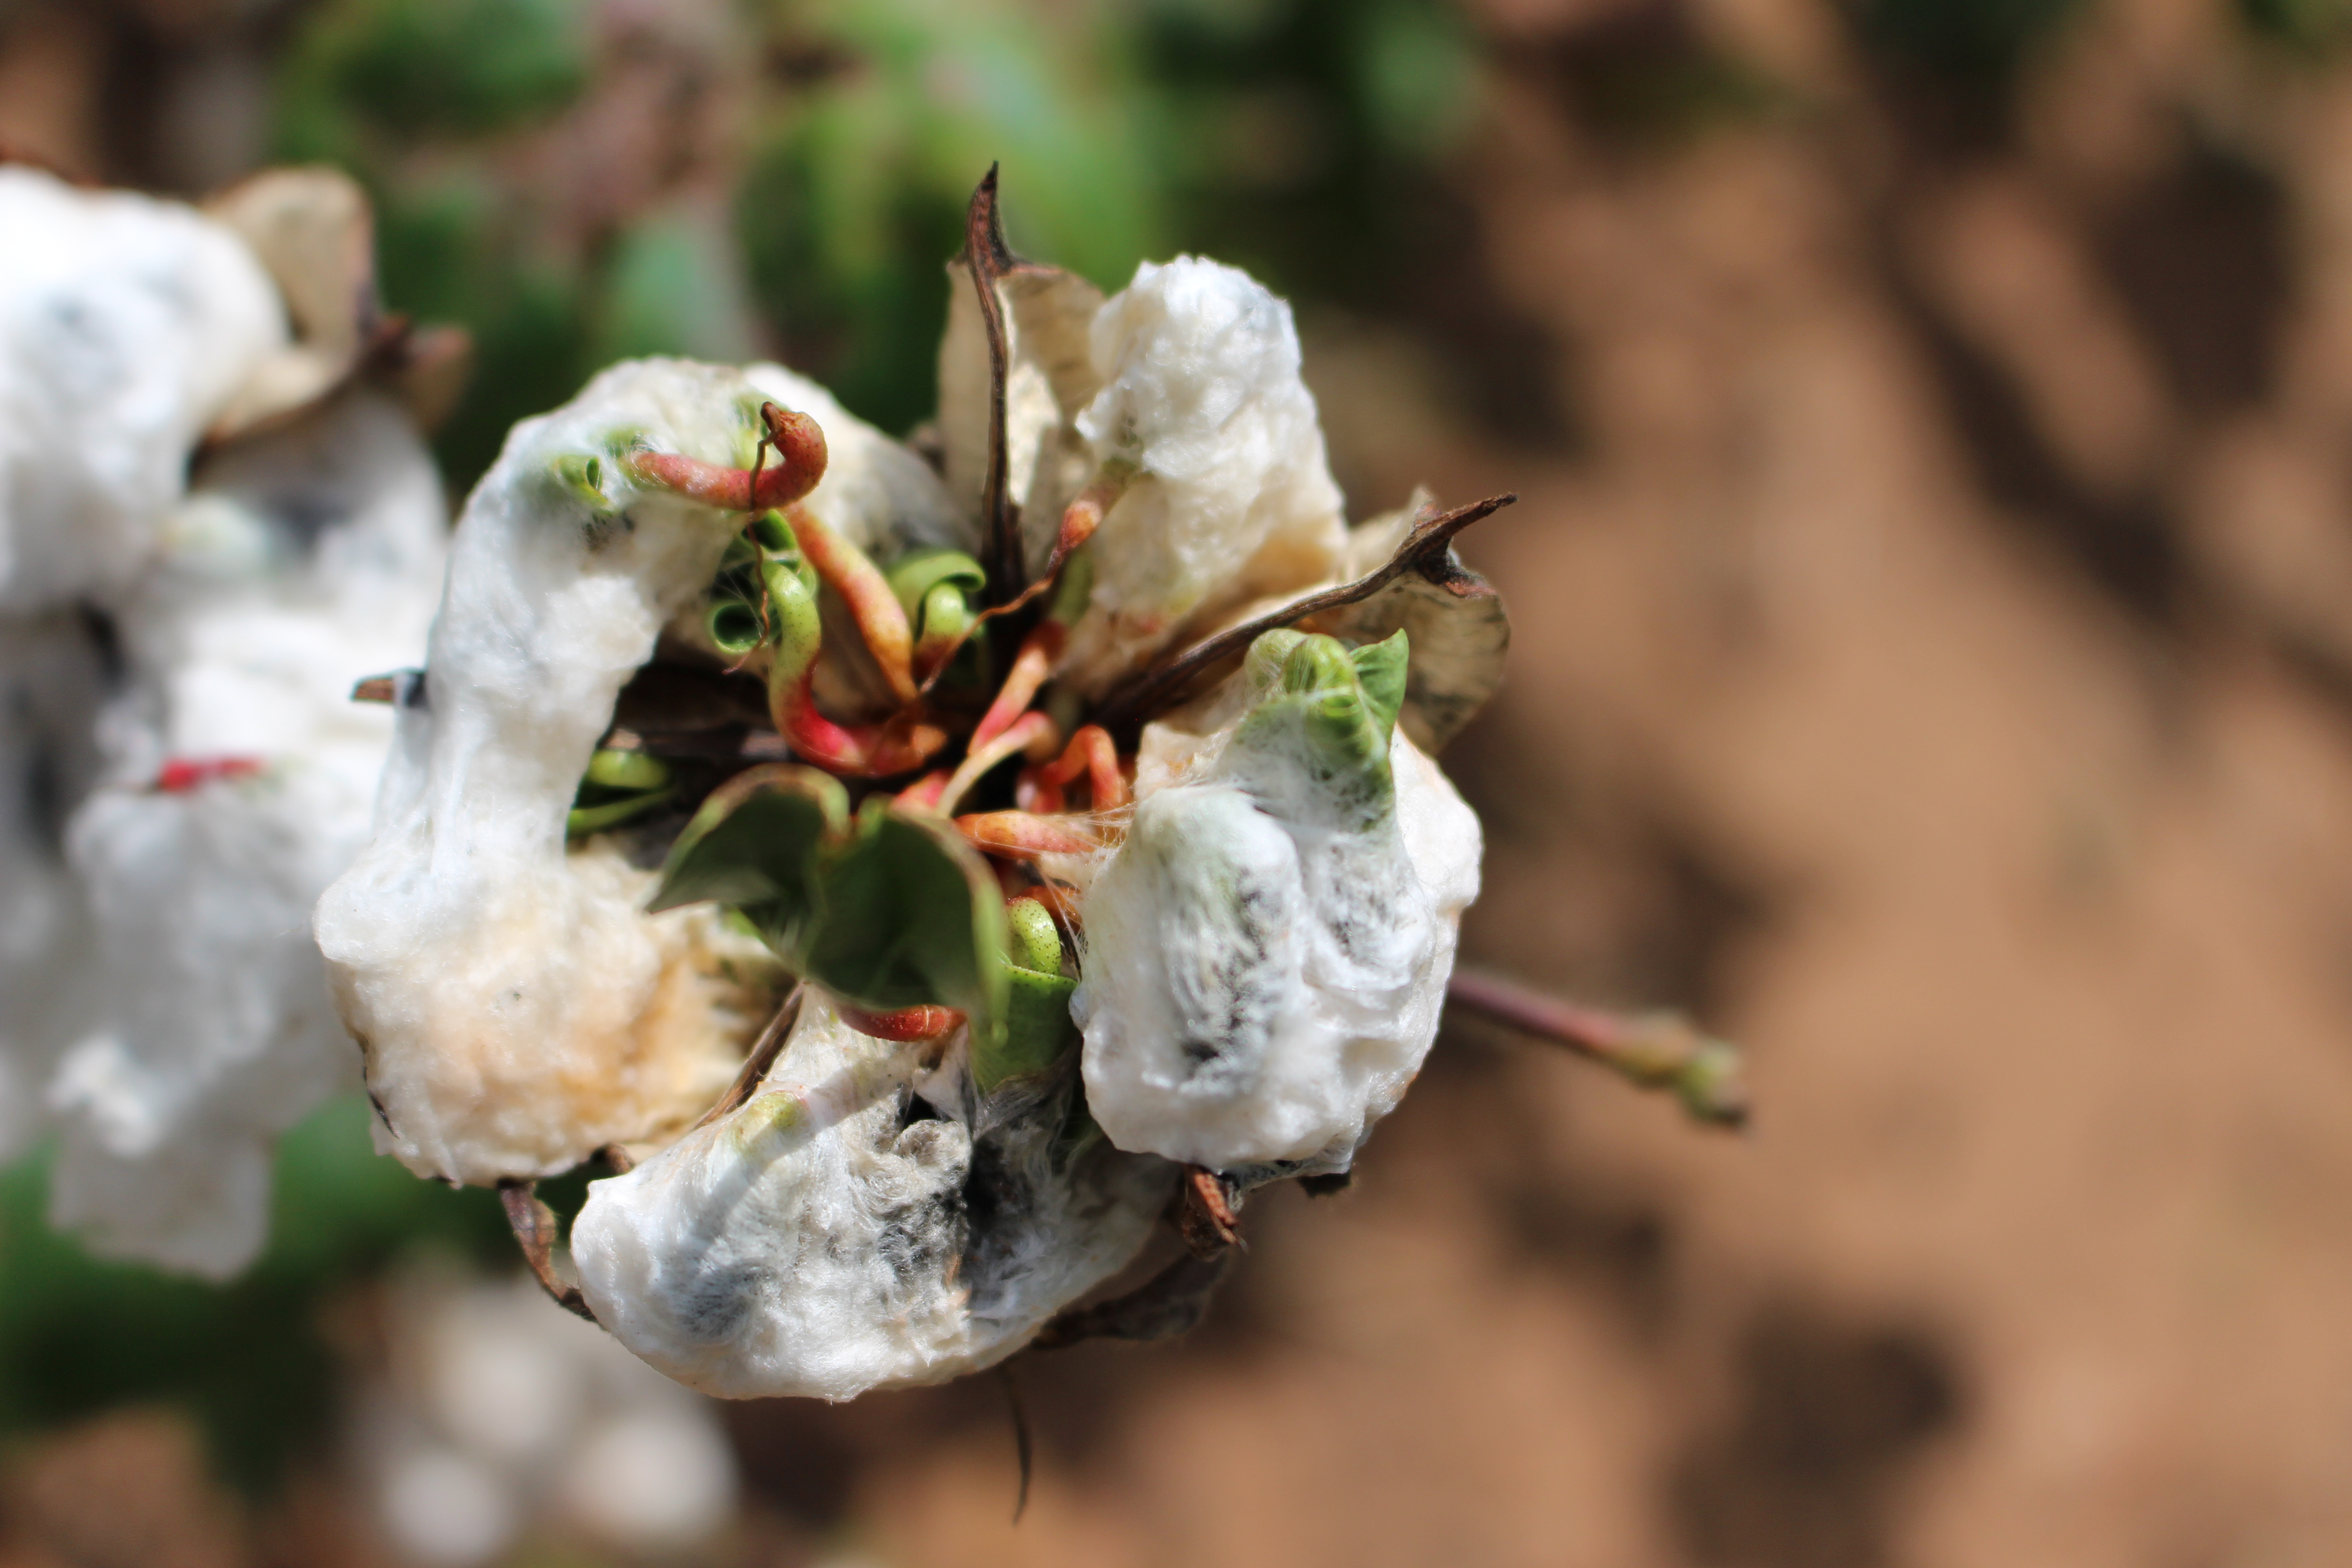 Cotton crop suffers damage from flooding rains